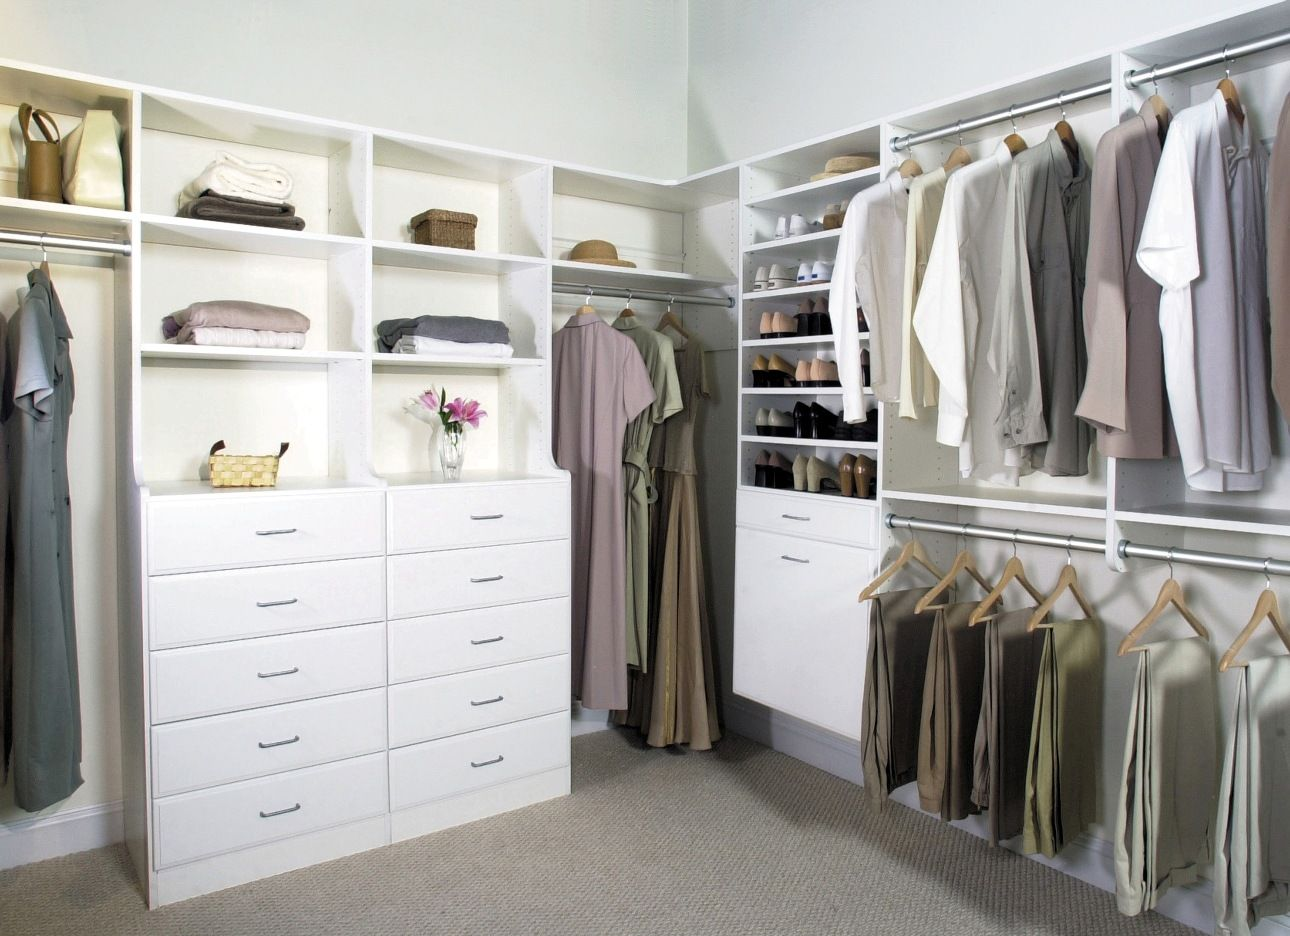 17 best images about custom closet project on pinterest custom closet design ideas - Custom Closet Design Ideas